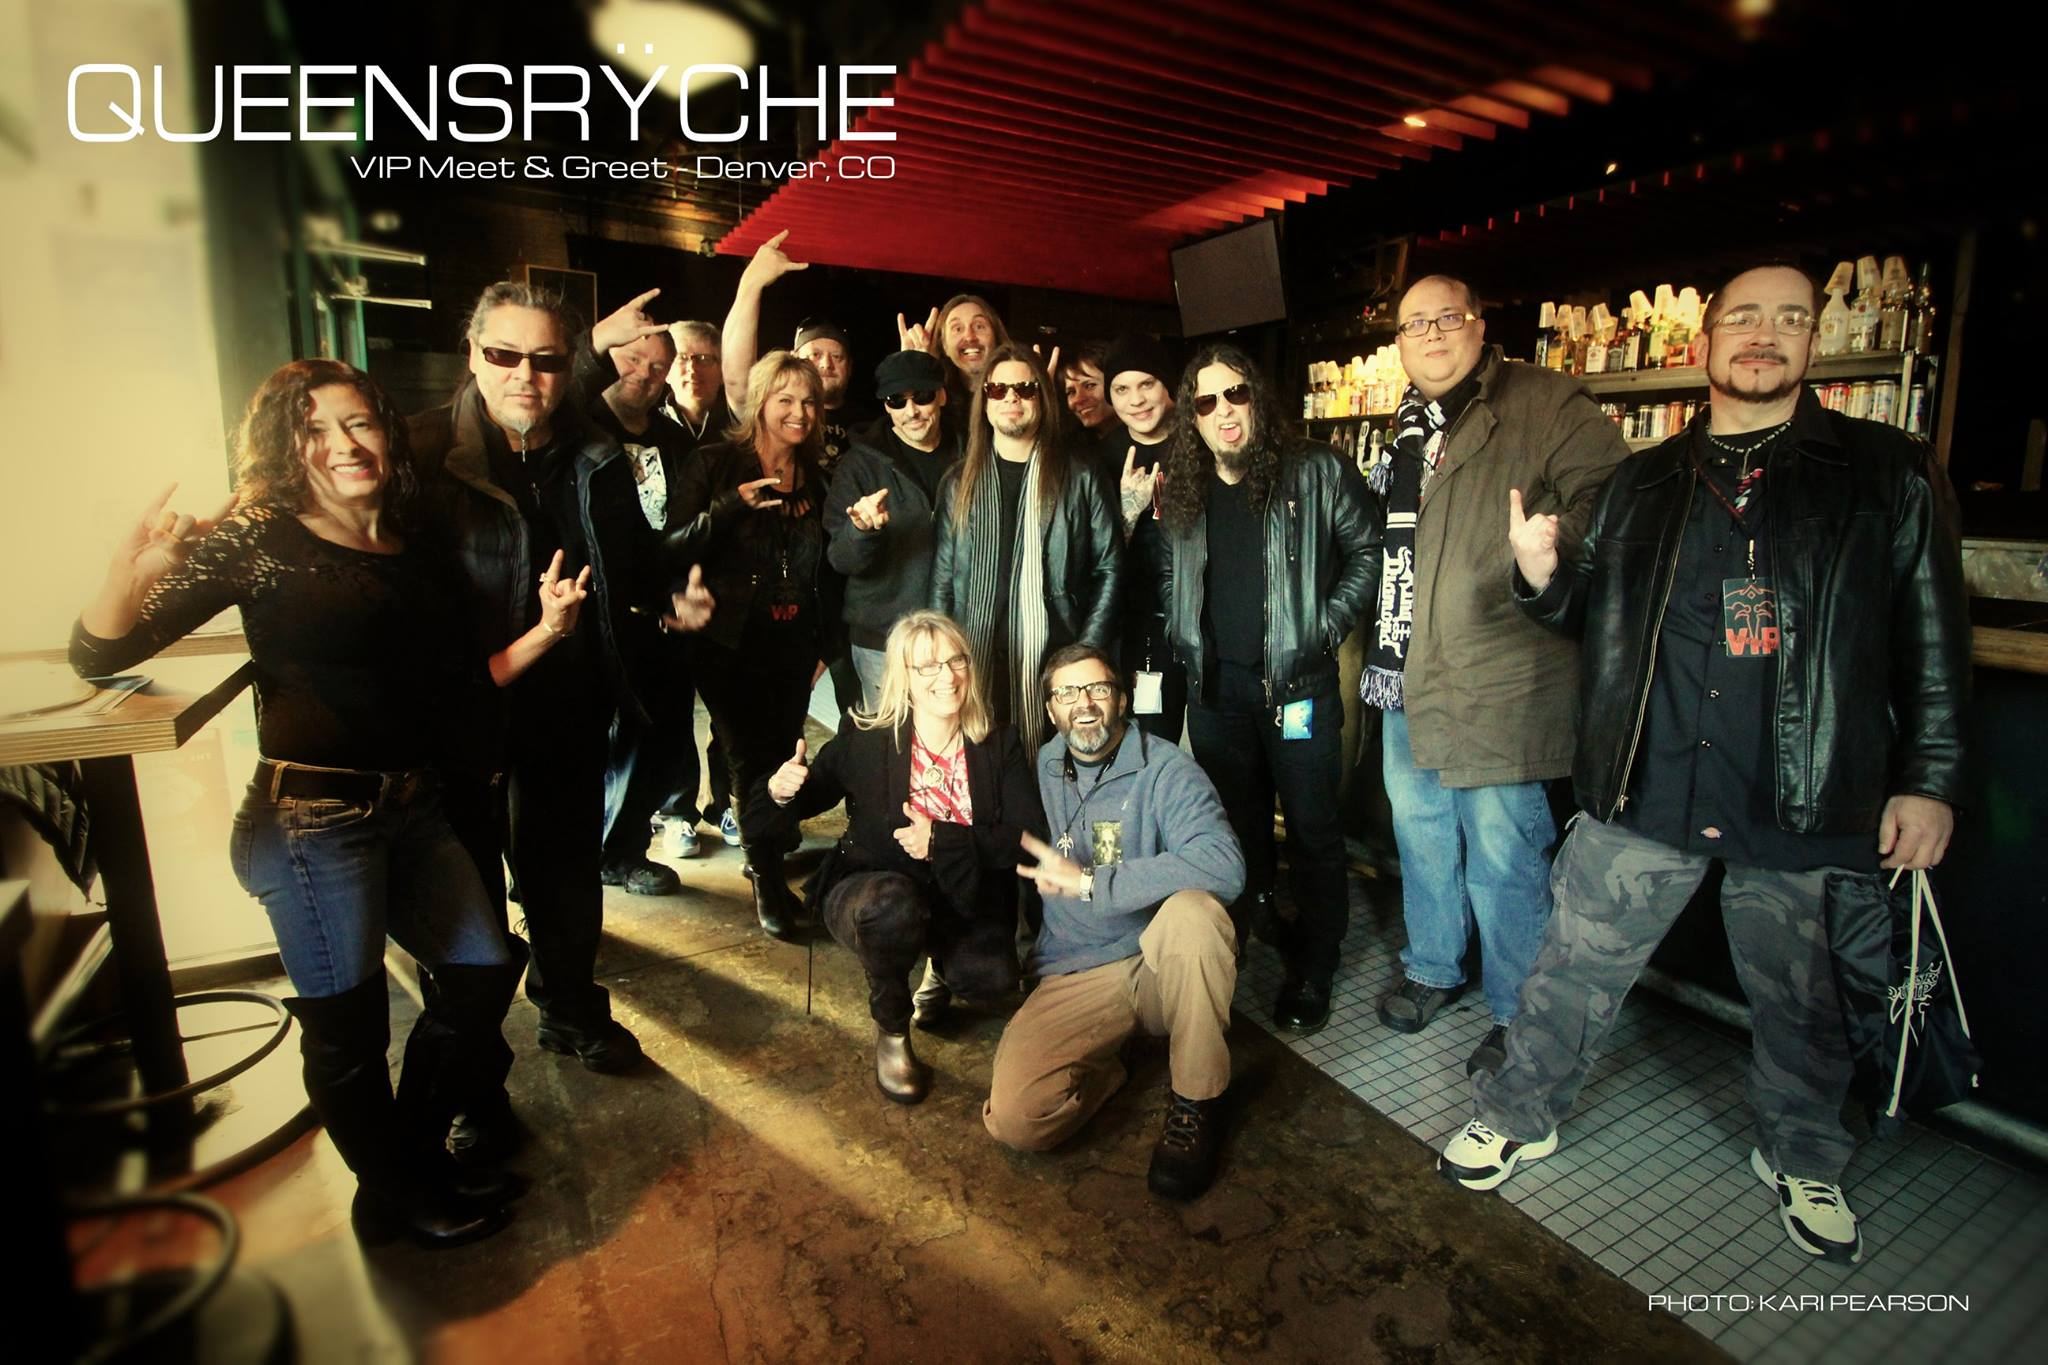 Vip meet and greets queensrche summit music hall m4hsunfo Images